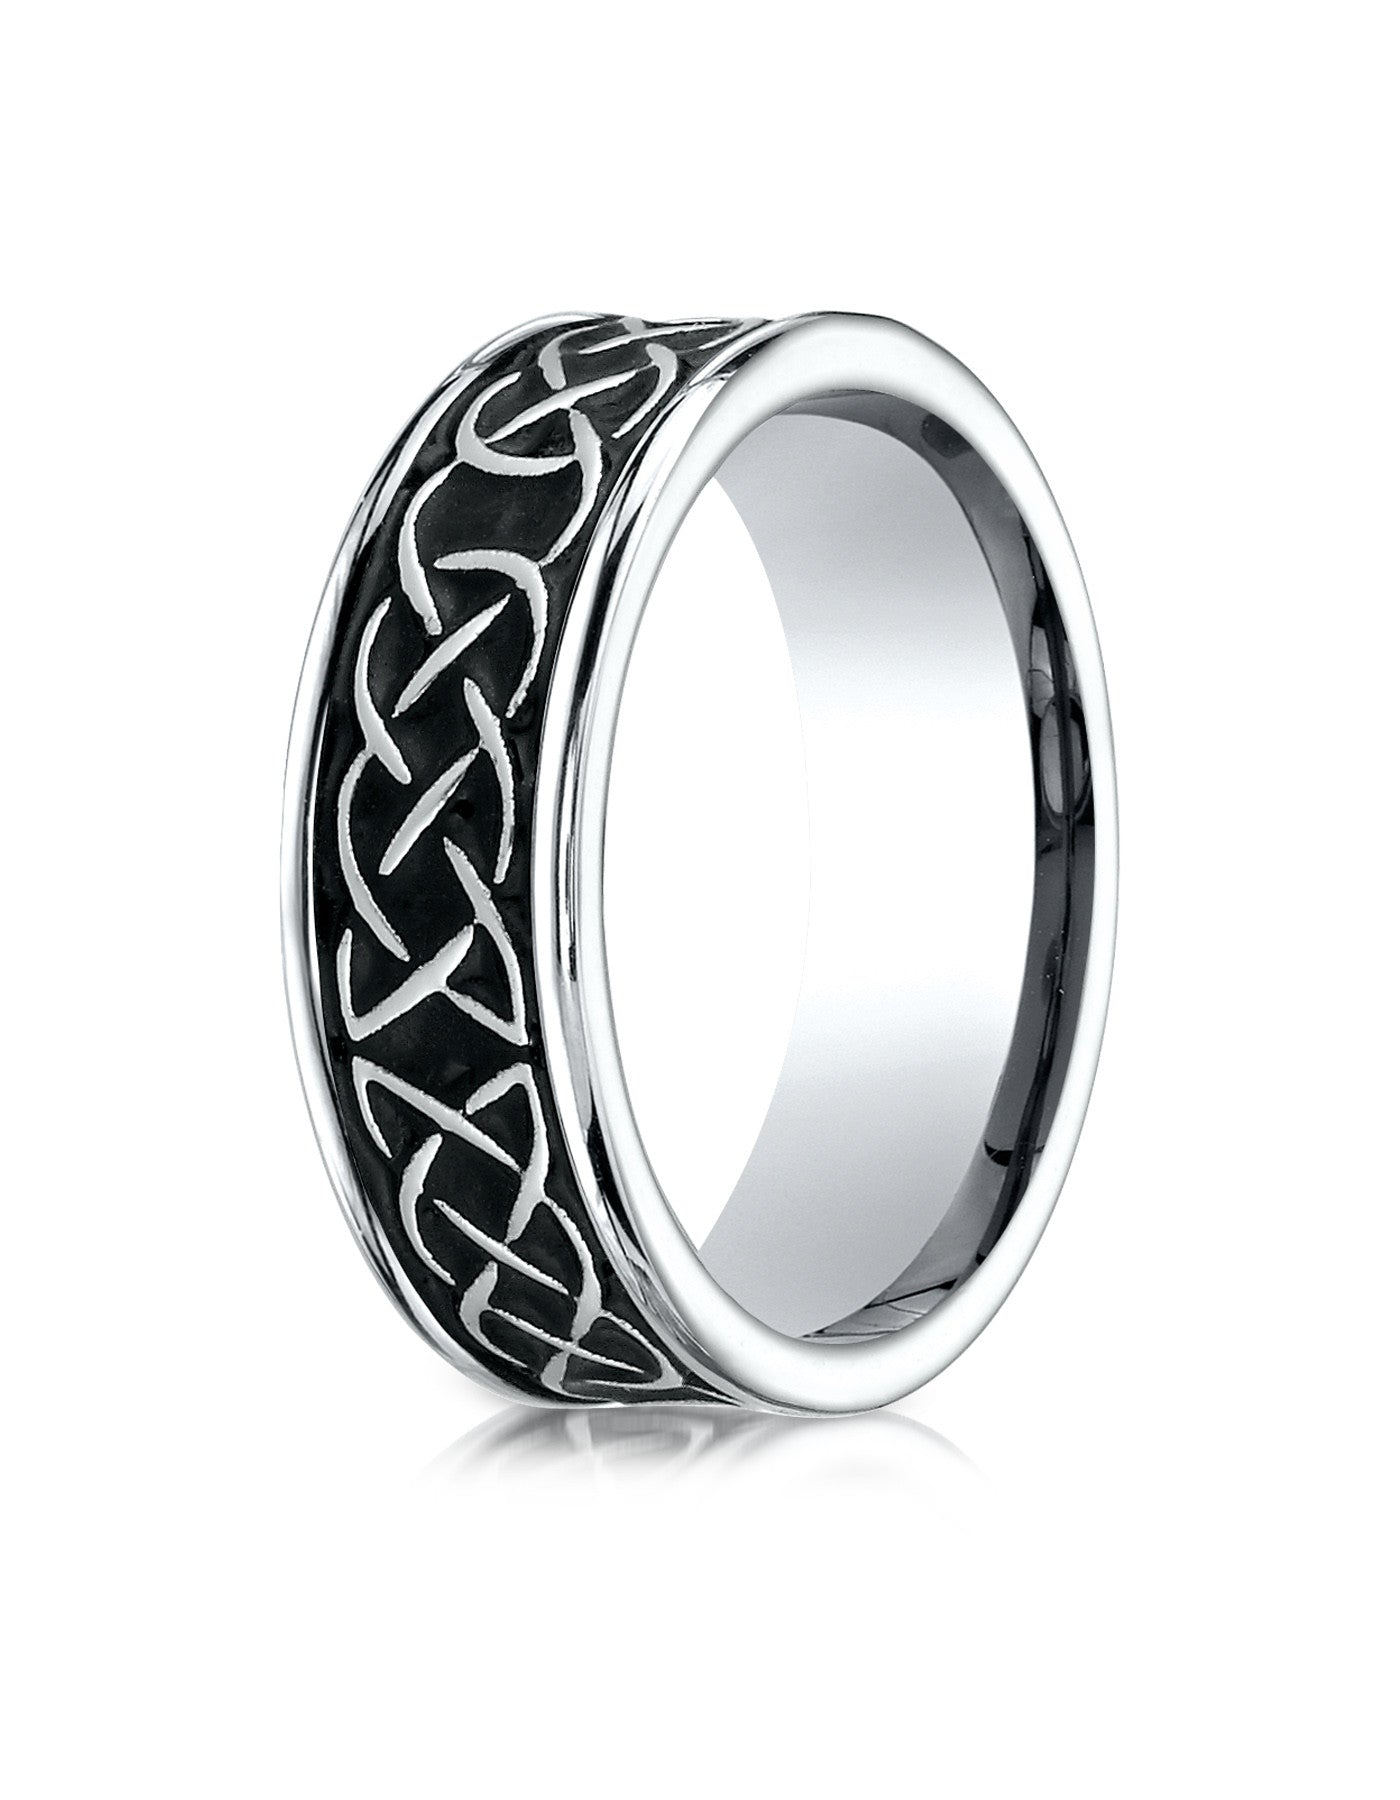 knot mjolnir products sterling wedding rings celtic norse spirit ring silver viking